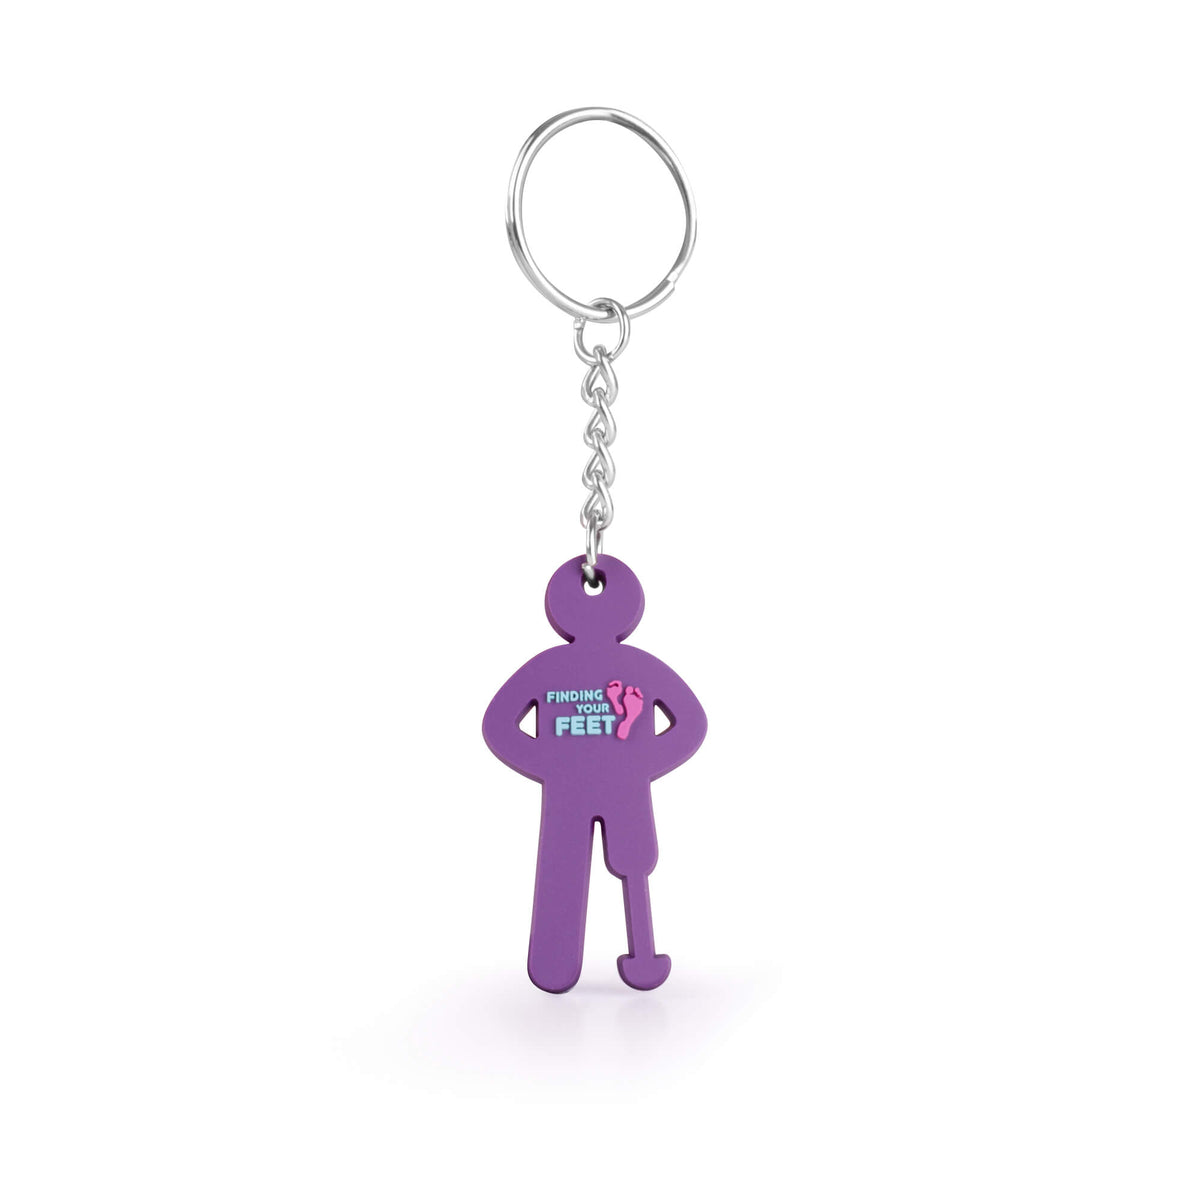 finding your feet keyring